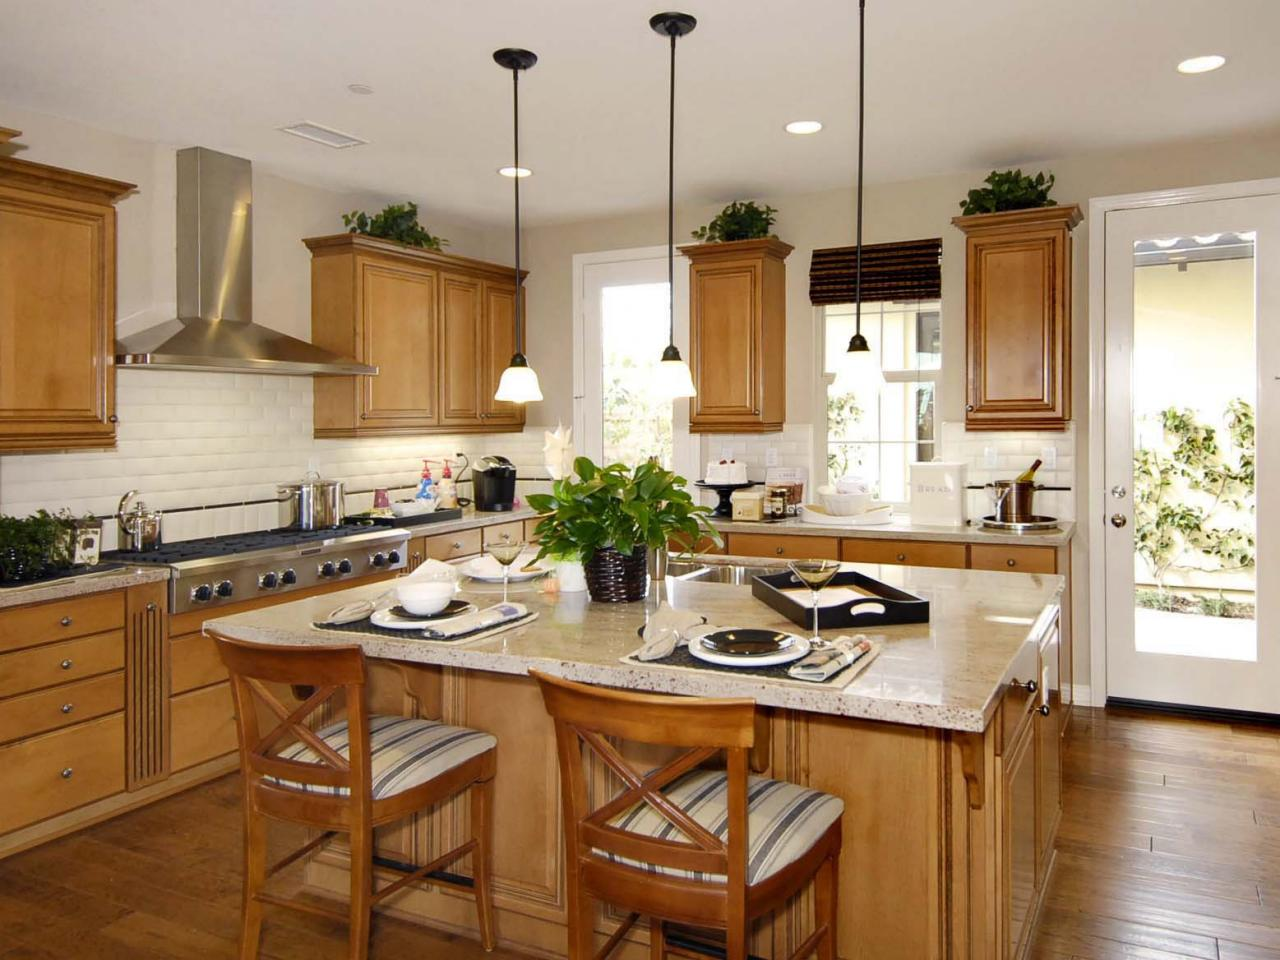 Kitchen Countertops Ideas : Cheap kitchen countertops pictures options ideas hgtv